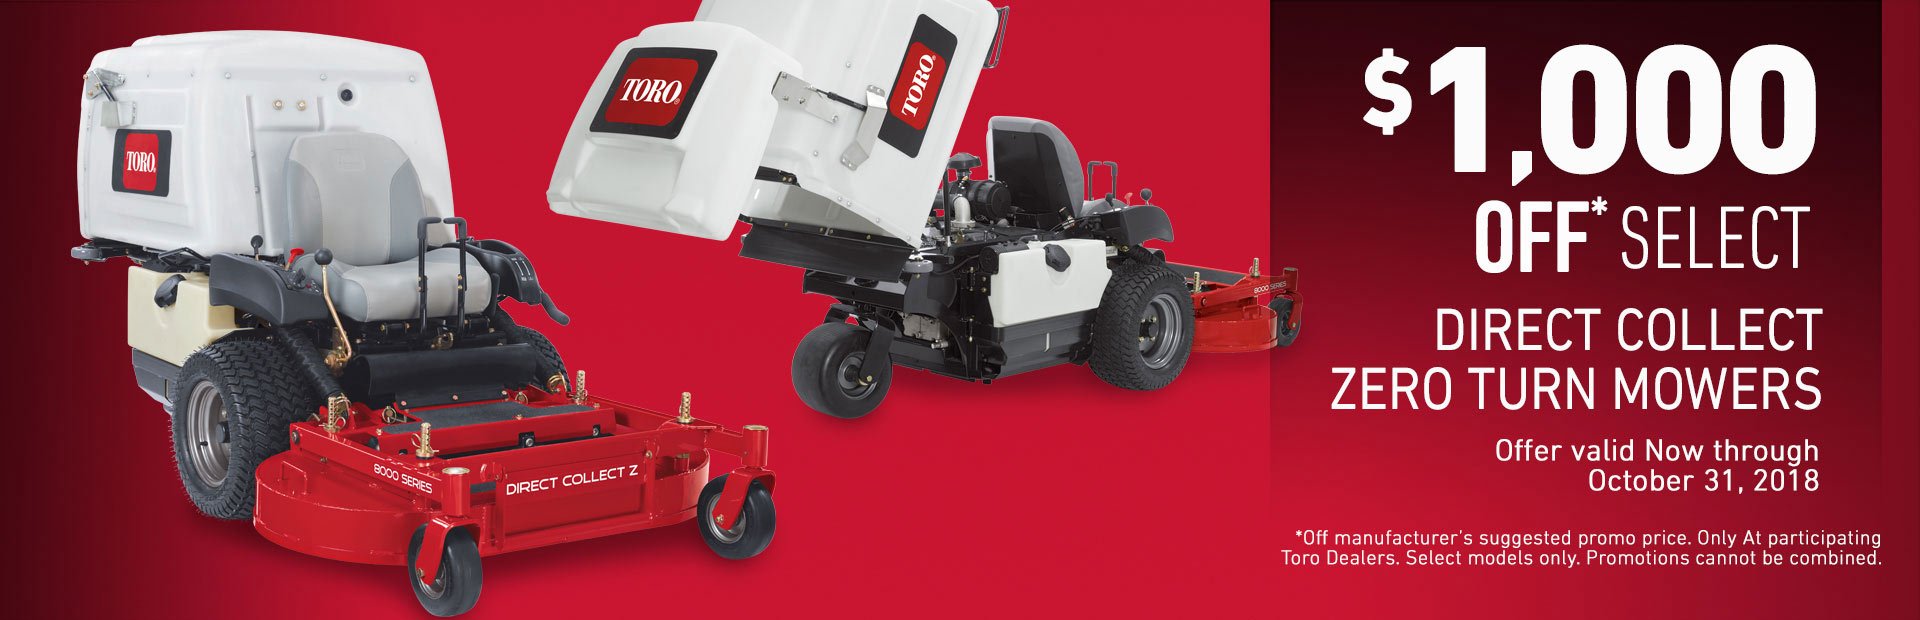 $1000 USD Off 8000 Series Direct Collect Mowers